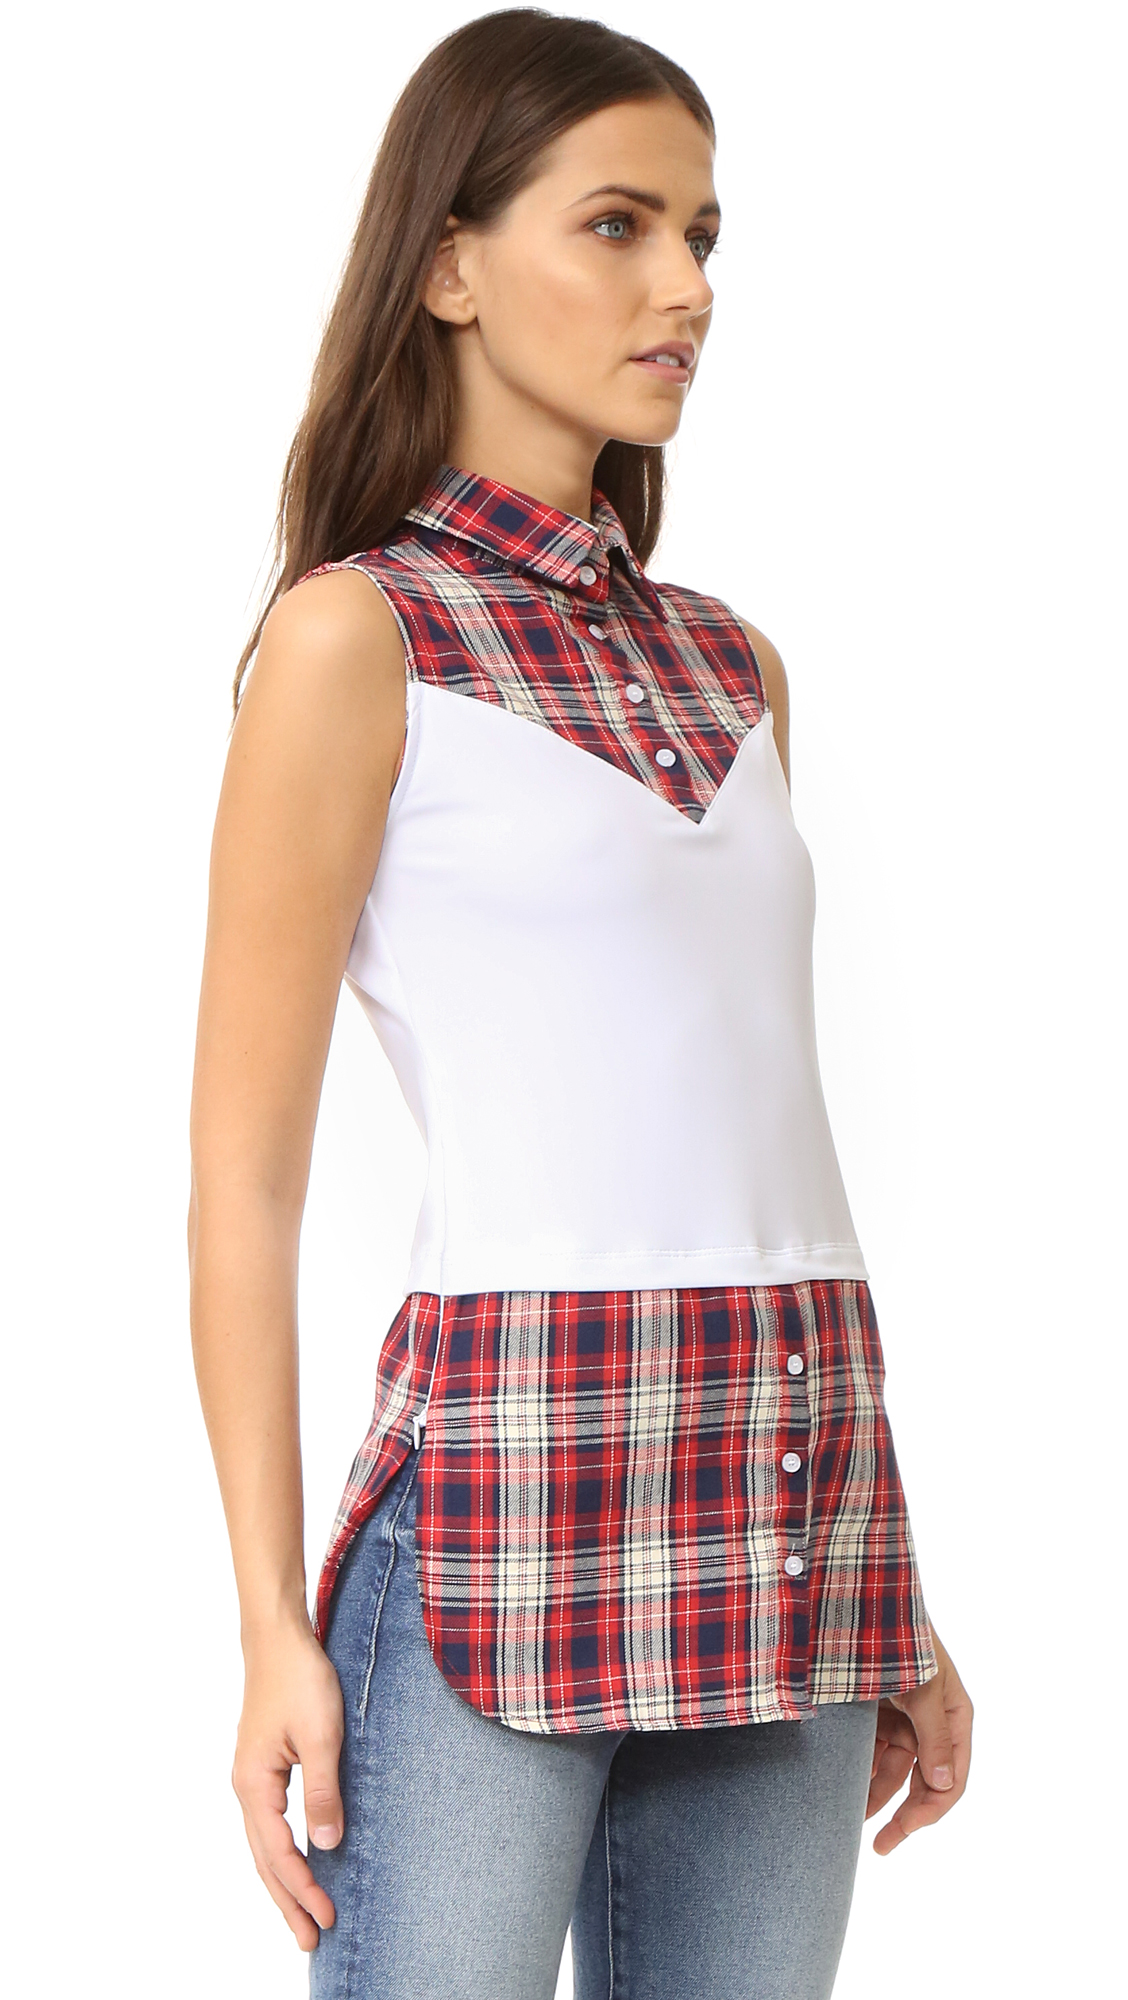 Crisp, plaid shirting forms the angular yoke and shirttail hem of this formfitting SKINNYSHIRT top. The easy to layer piece is inset with a panel of slinky jersey for an effortless fit. Partial button placket. Covered